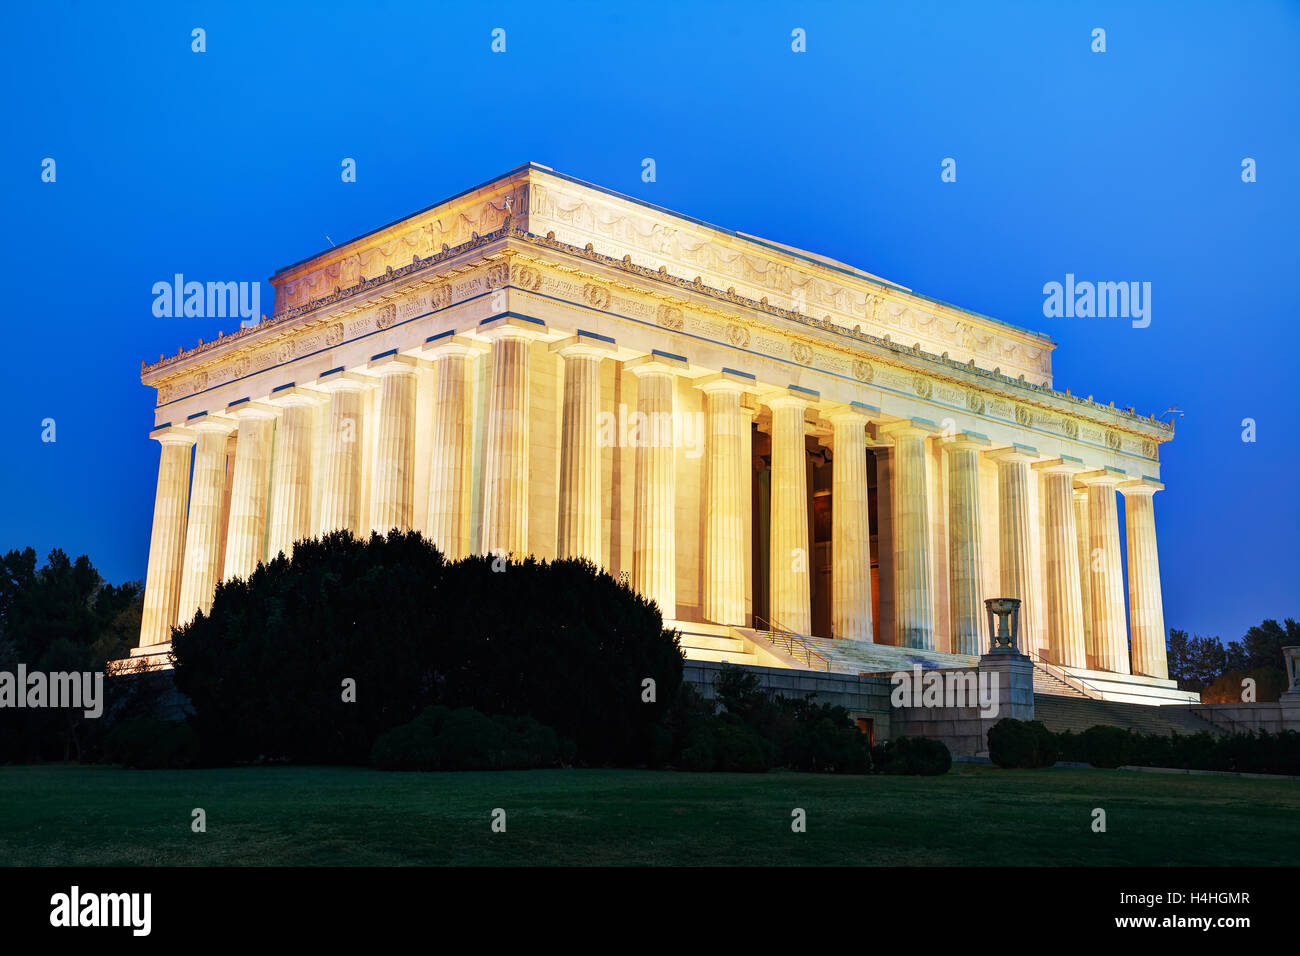 Abraham Lincoln Memorial in Washington, DC am Abend Stockbild